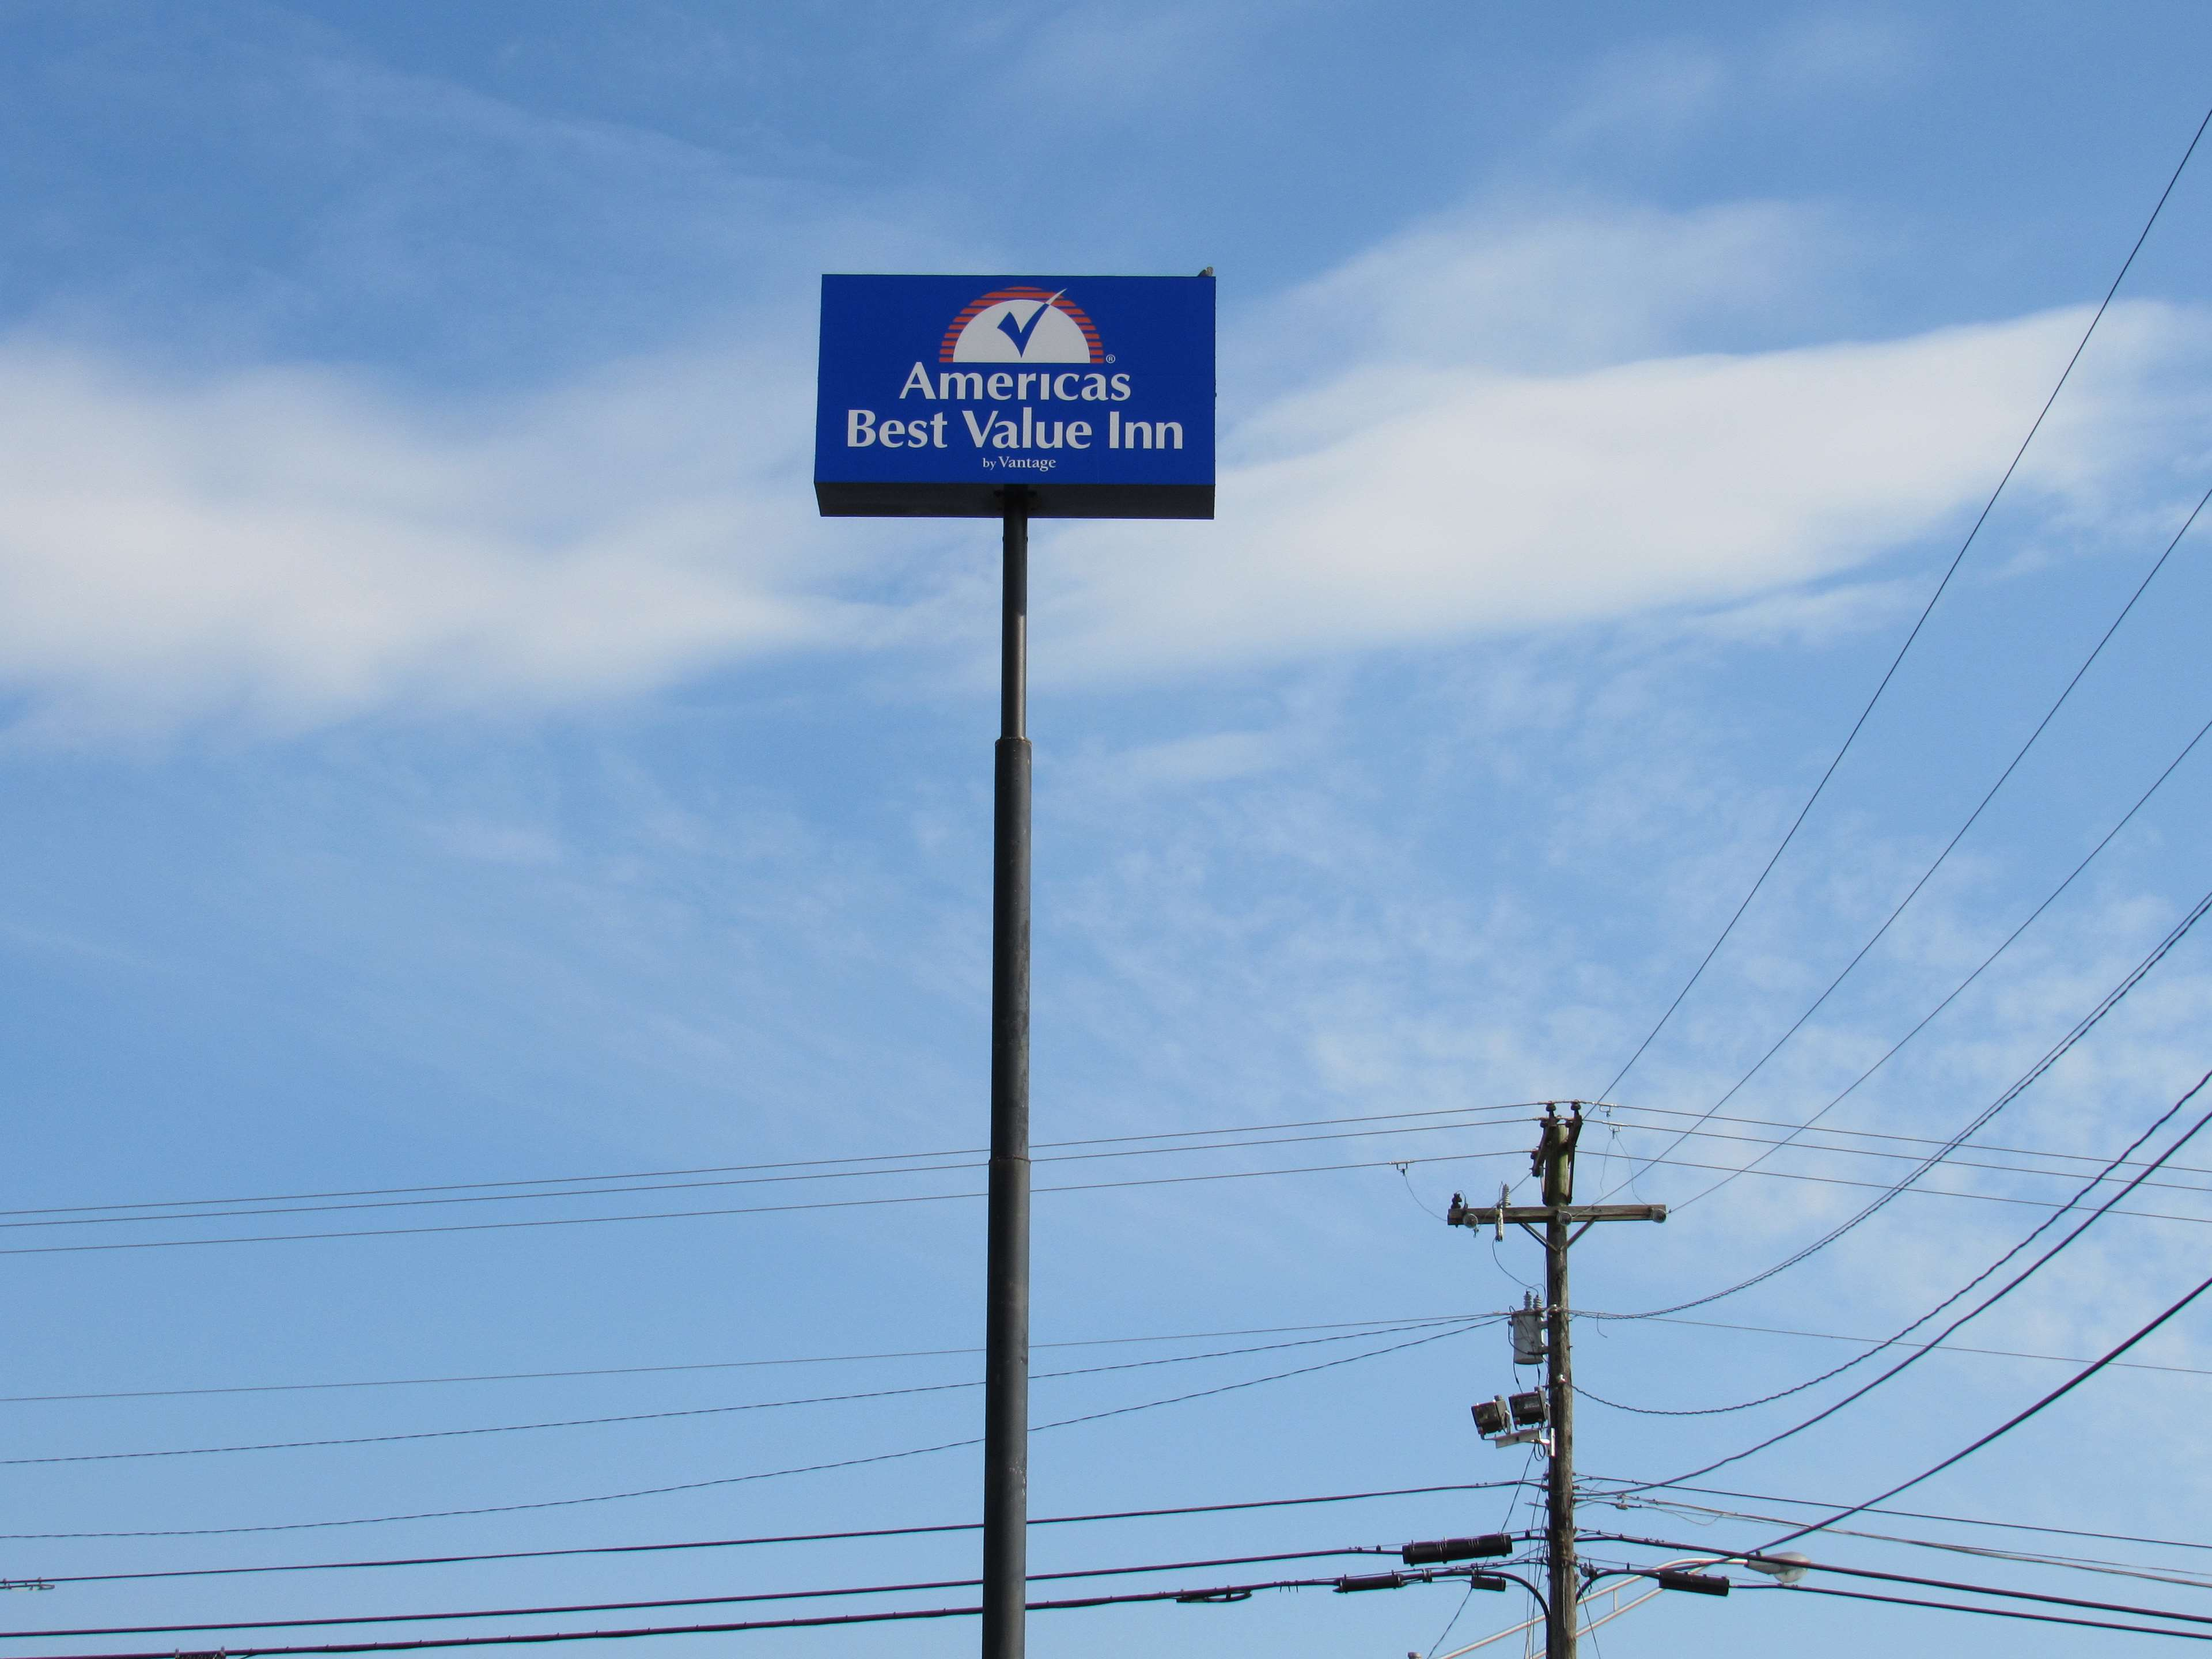 Americas best value inn somerset coupons near me in for Americas best coupon code